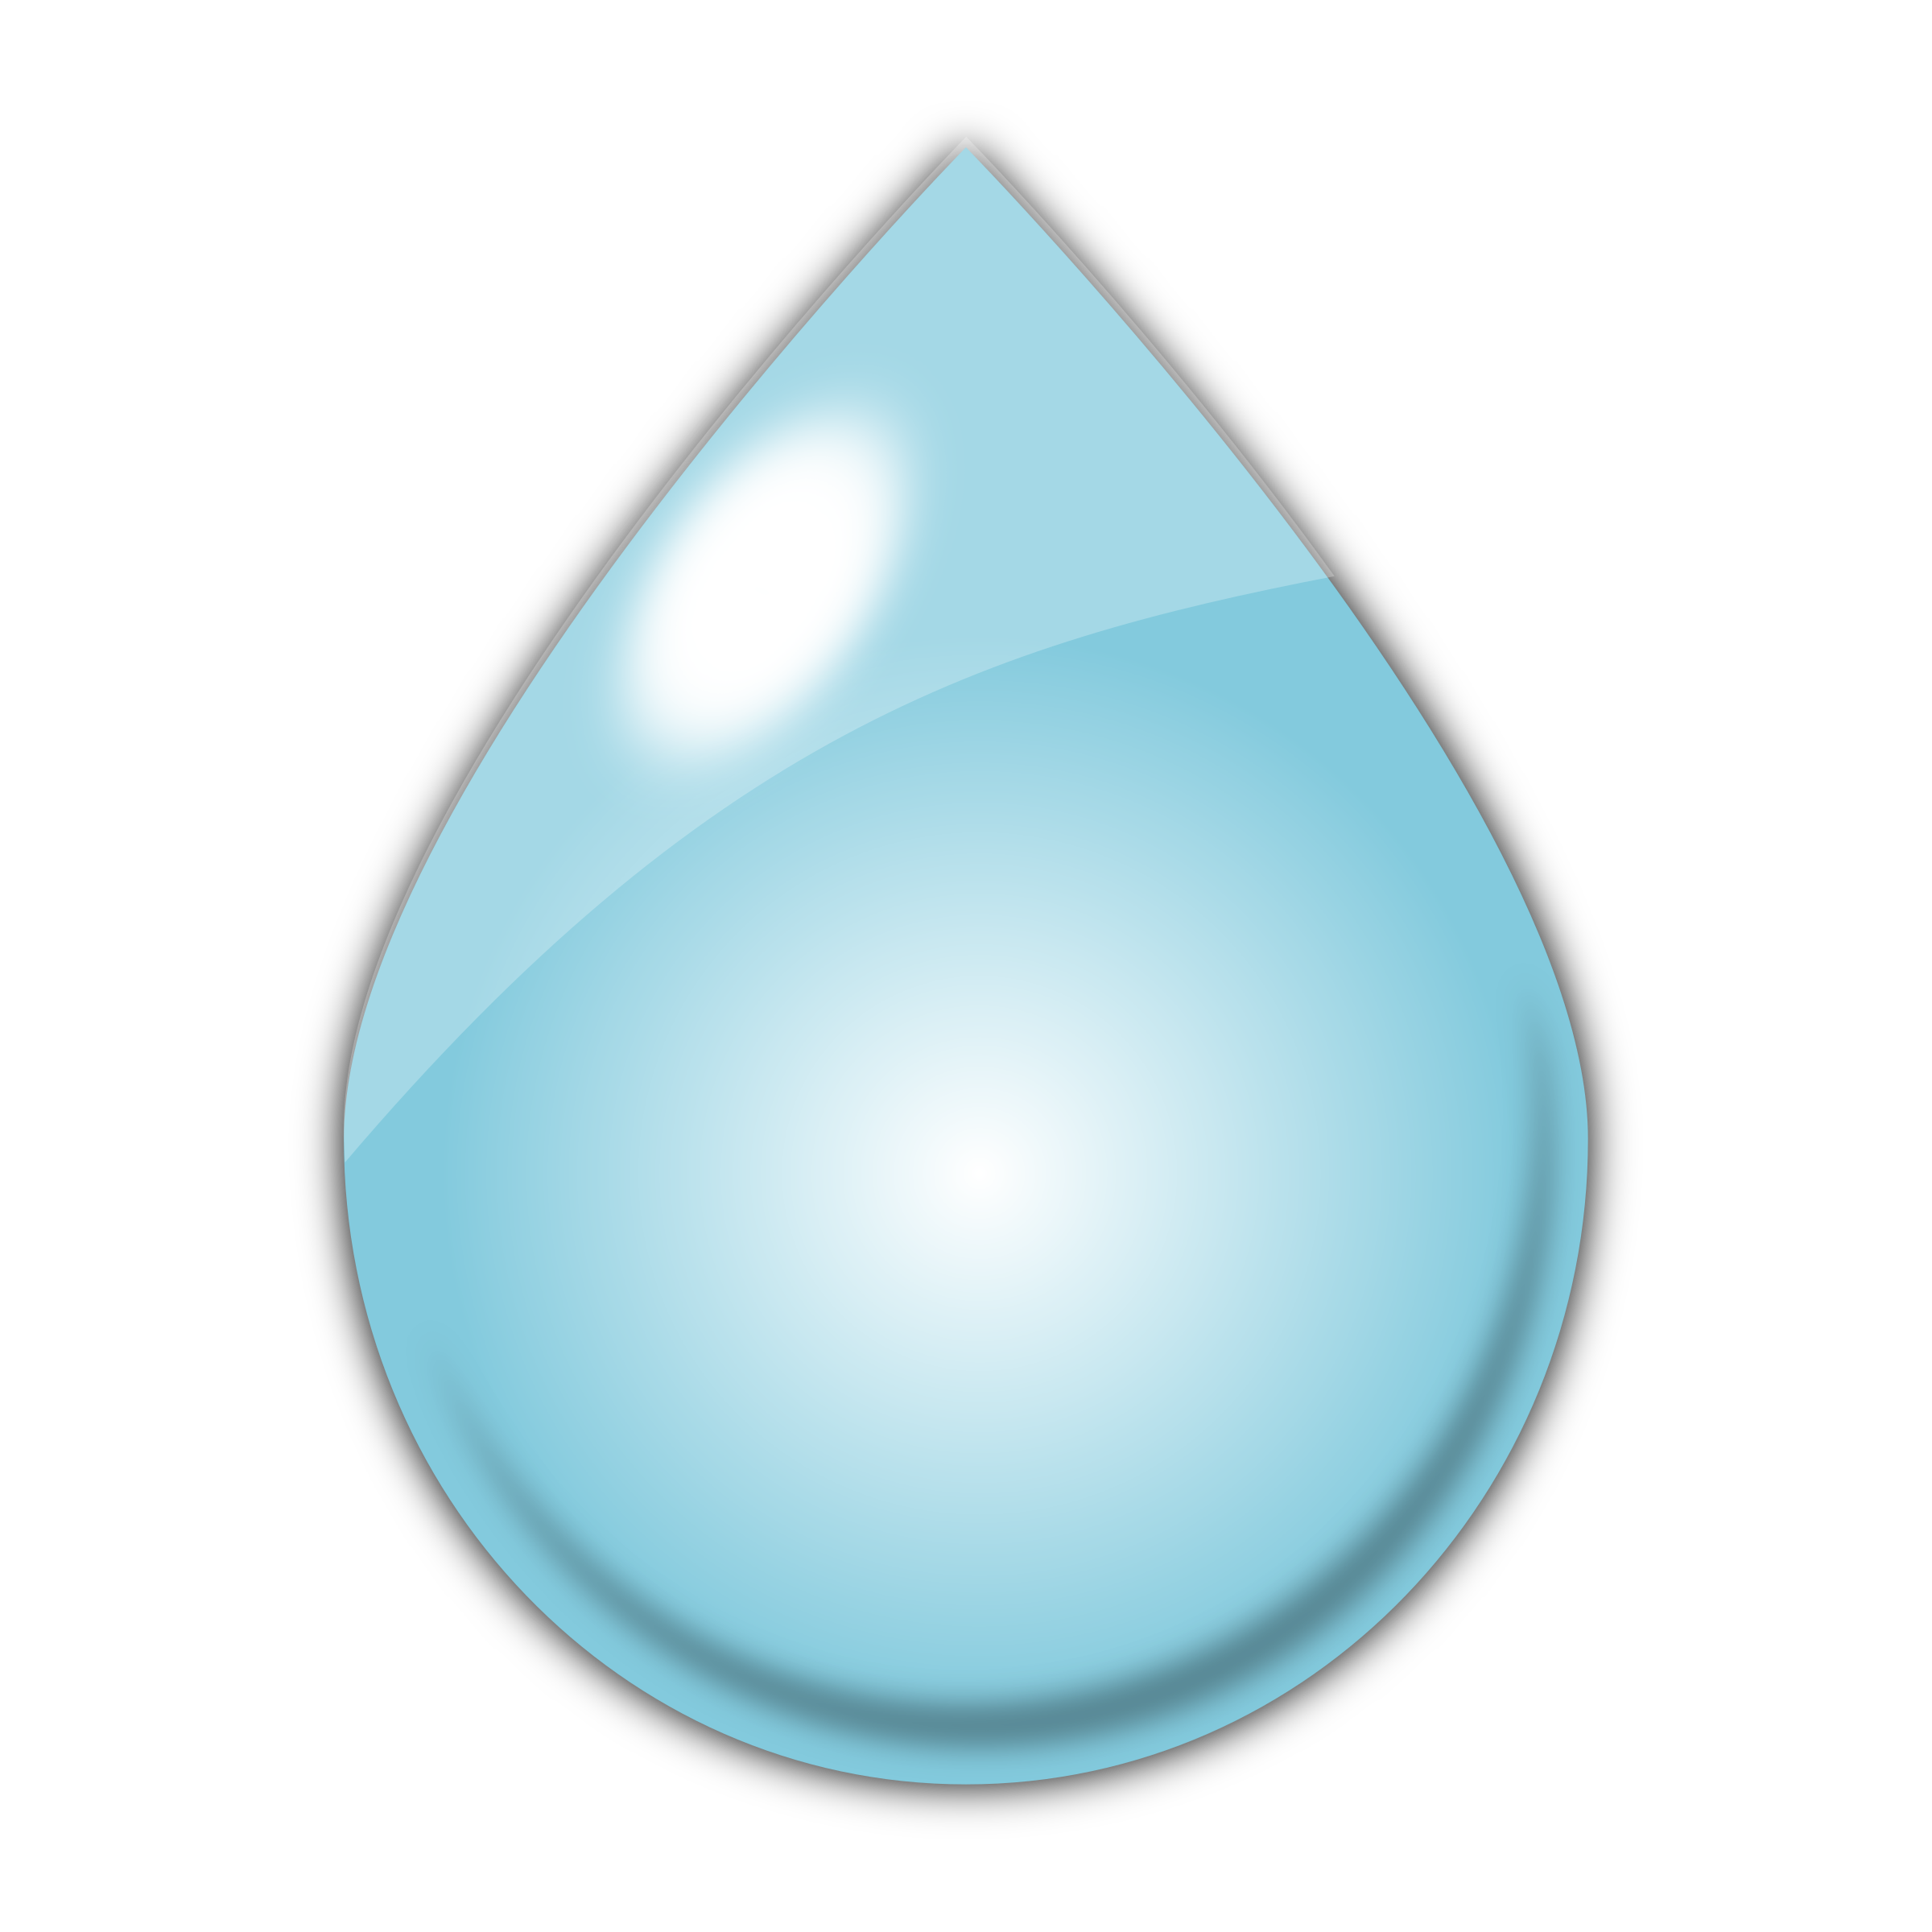 2400x2400 Raindrop Free Download Clip Art On Clipart Library